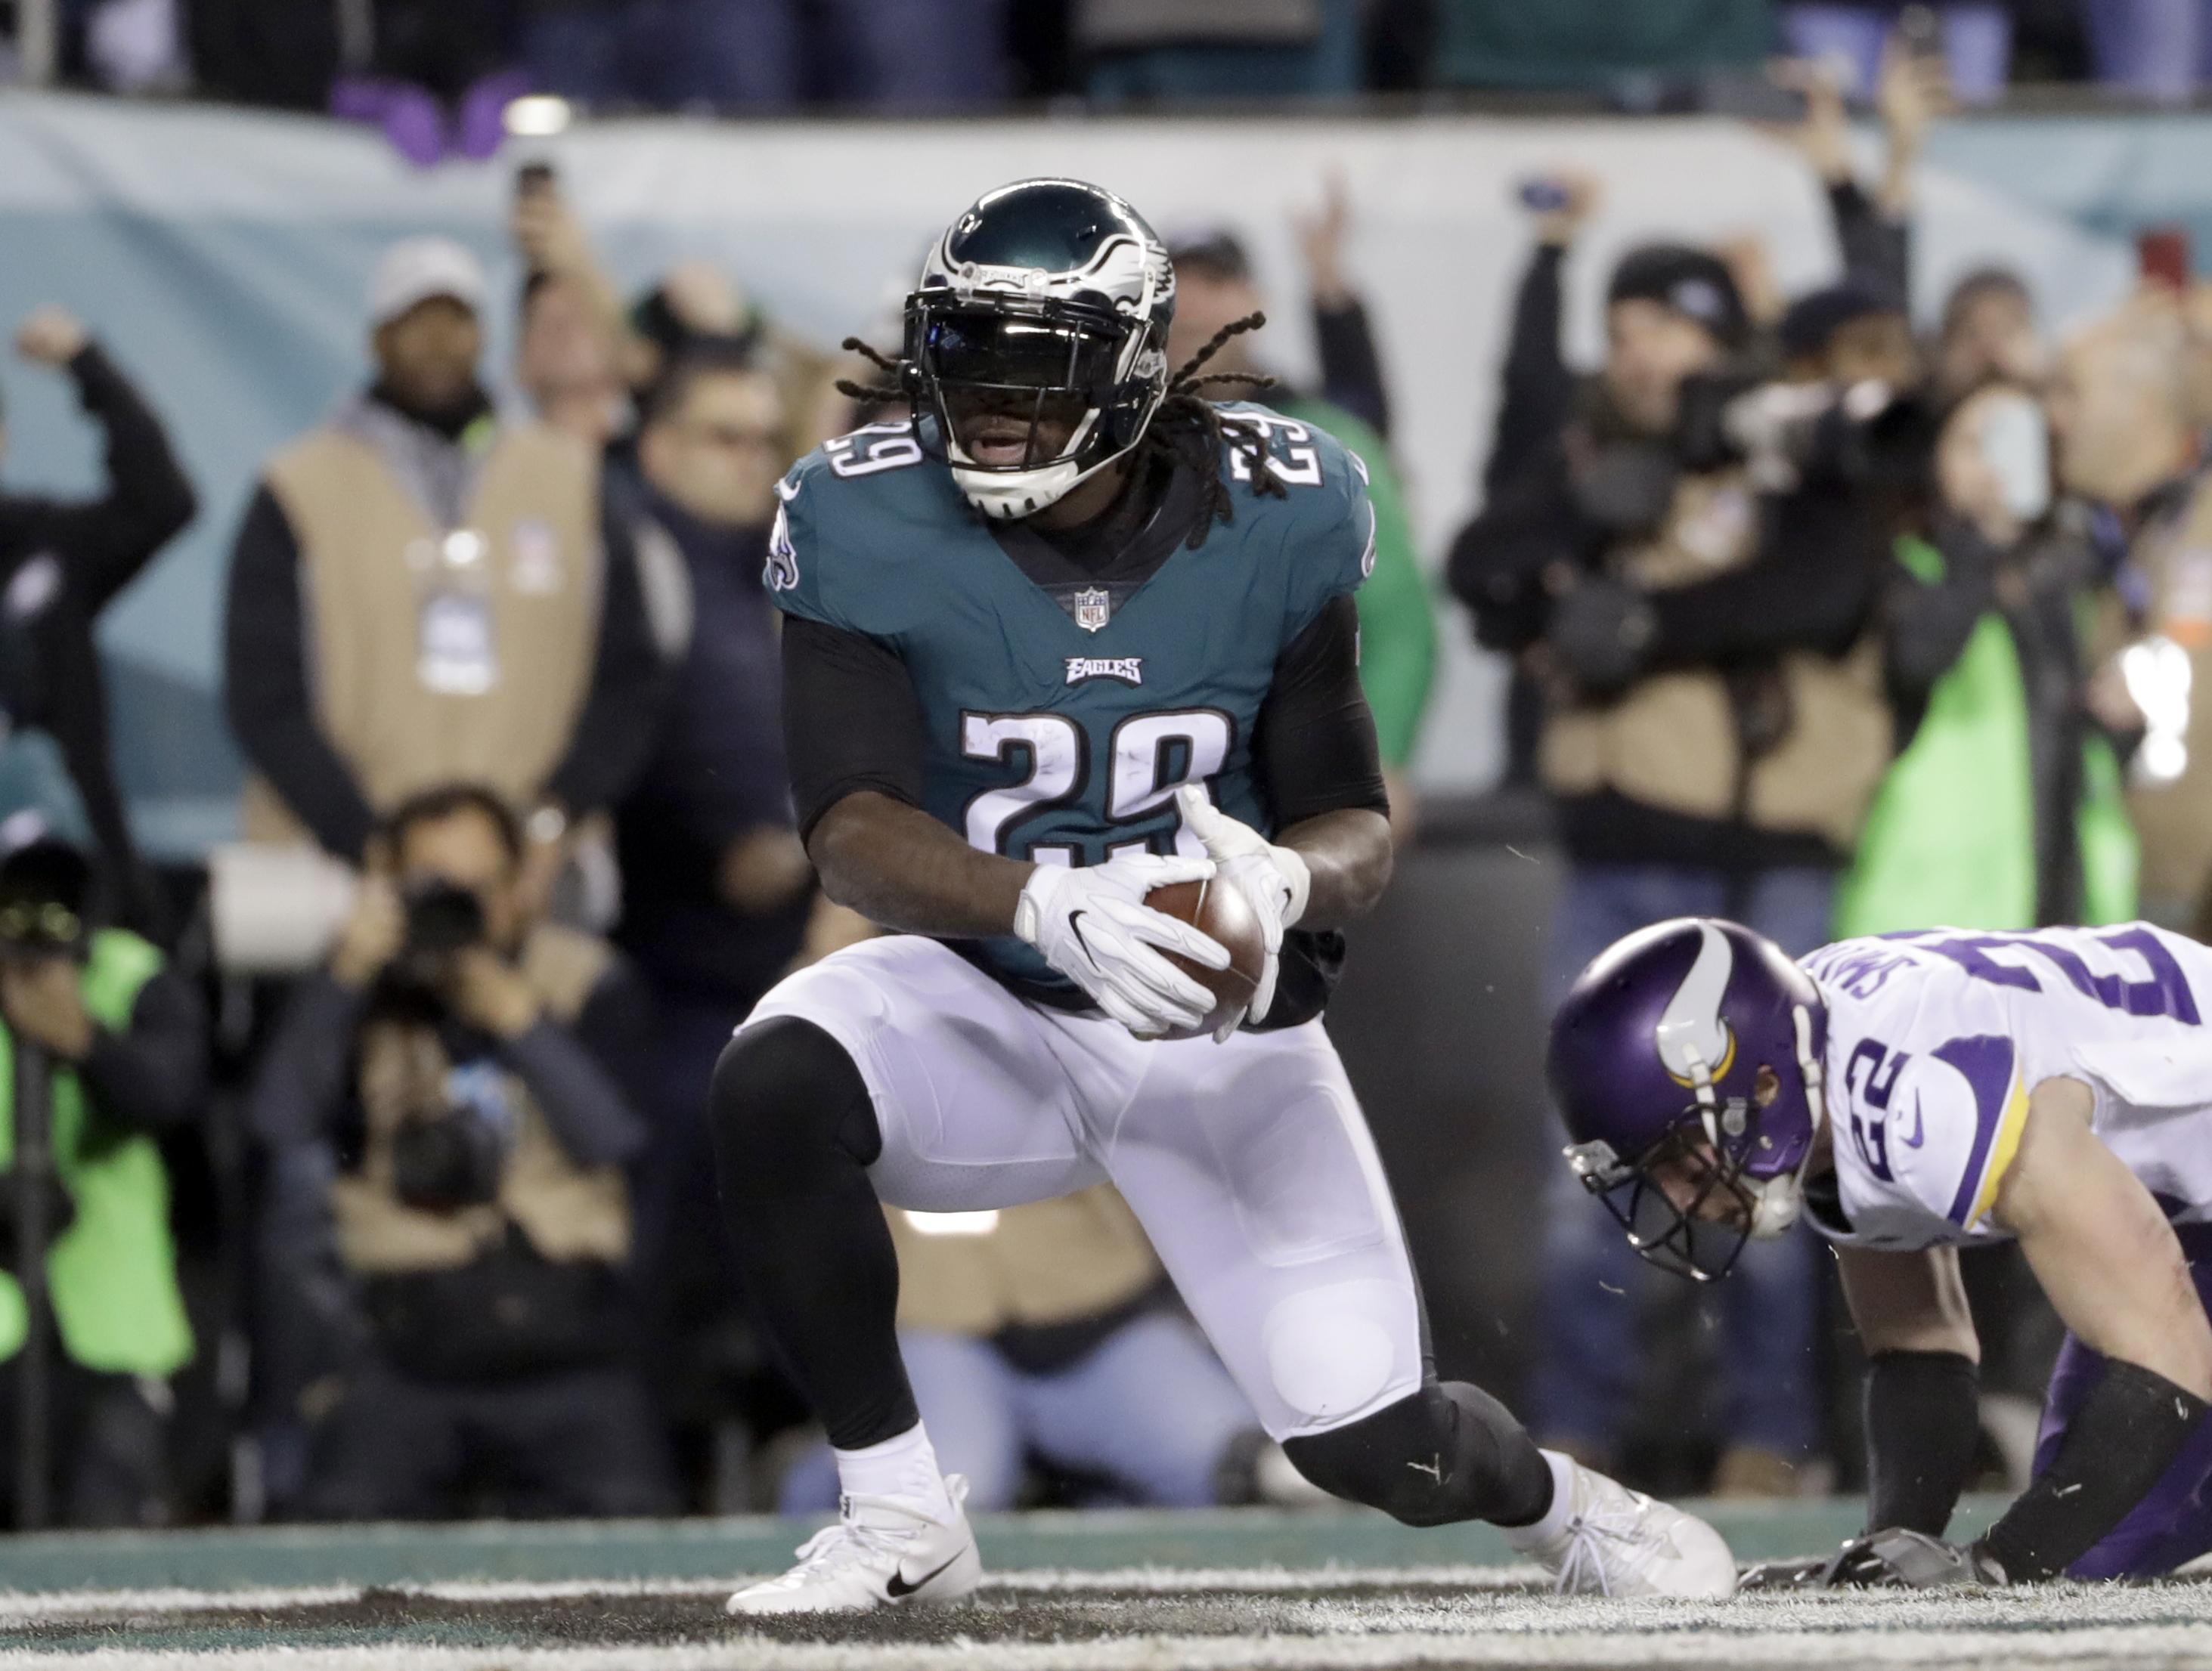 Eagles´ running back LeGarrette Blount scores a touchdown in the Eagles´ NFC championship win on Sunday.